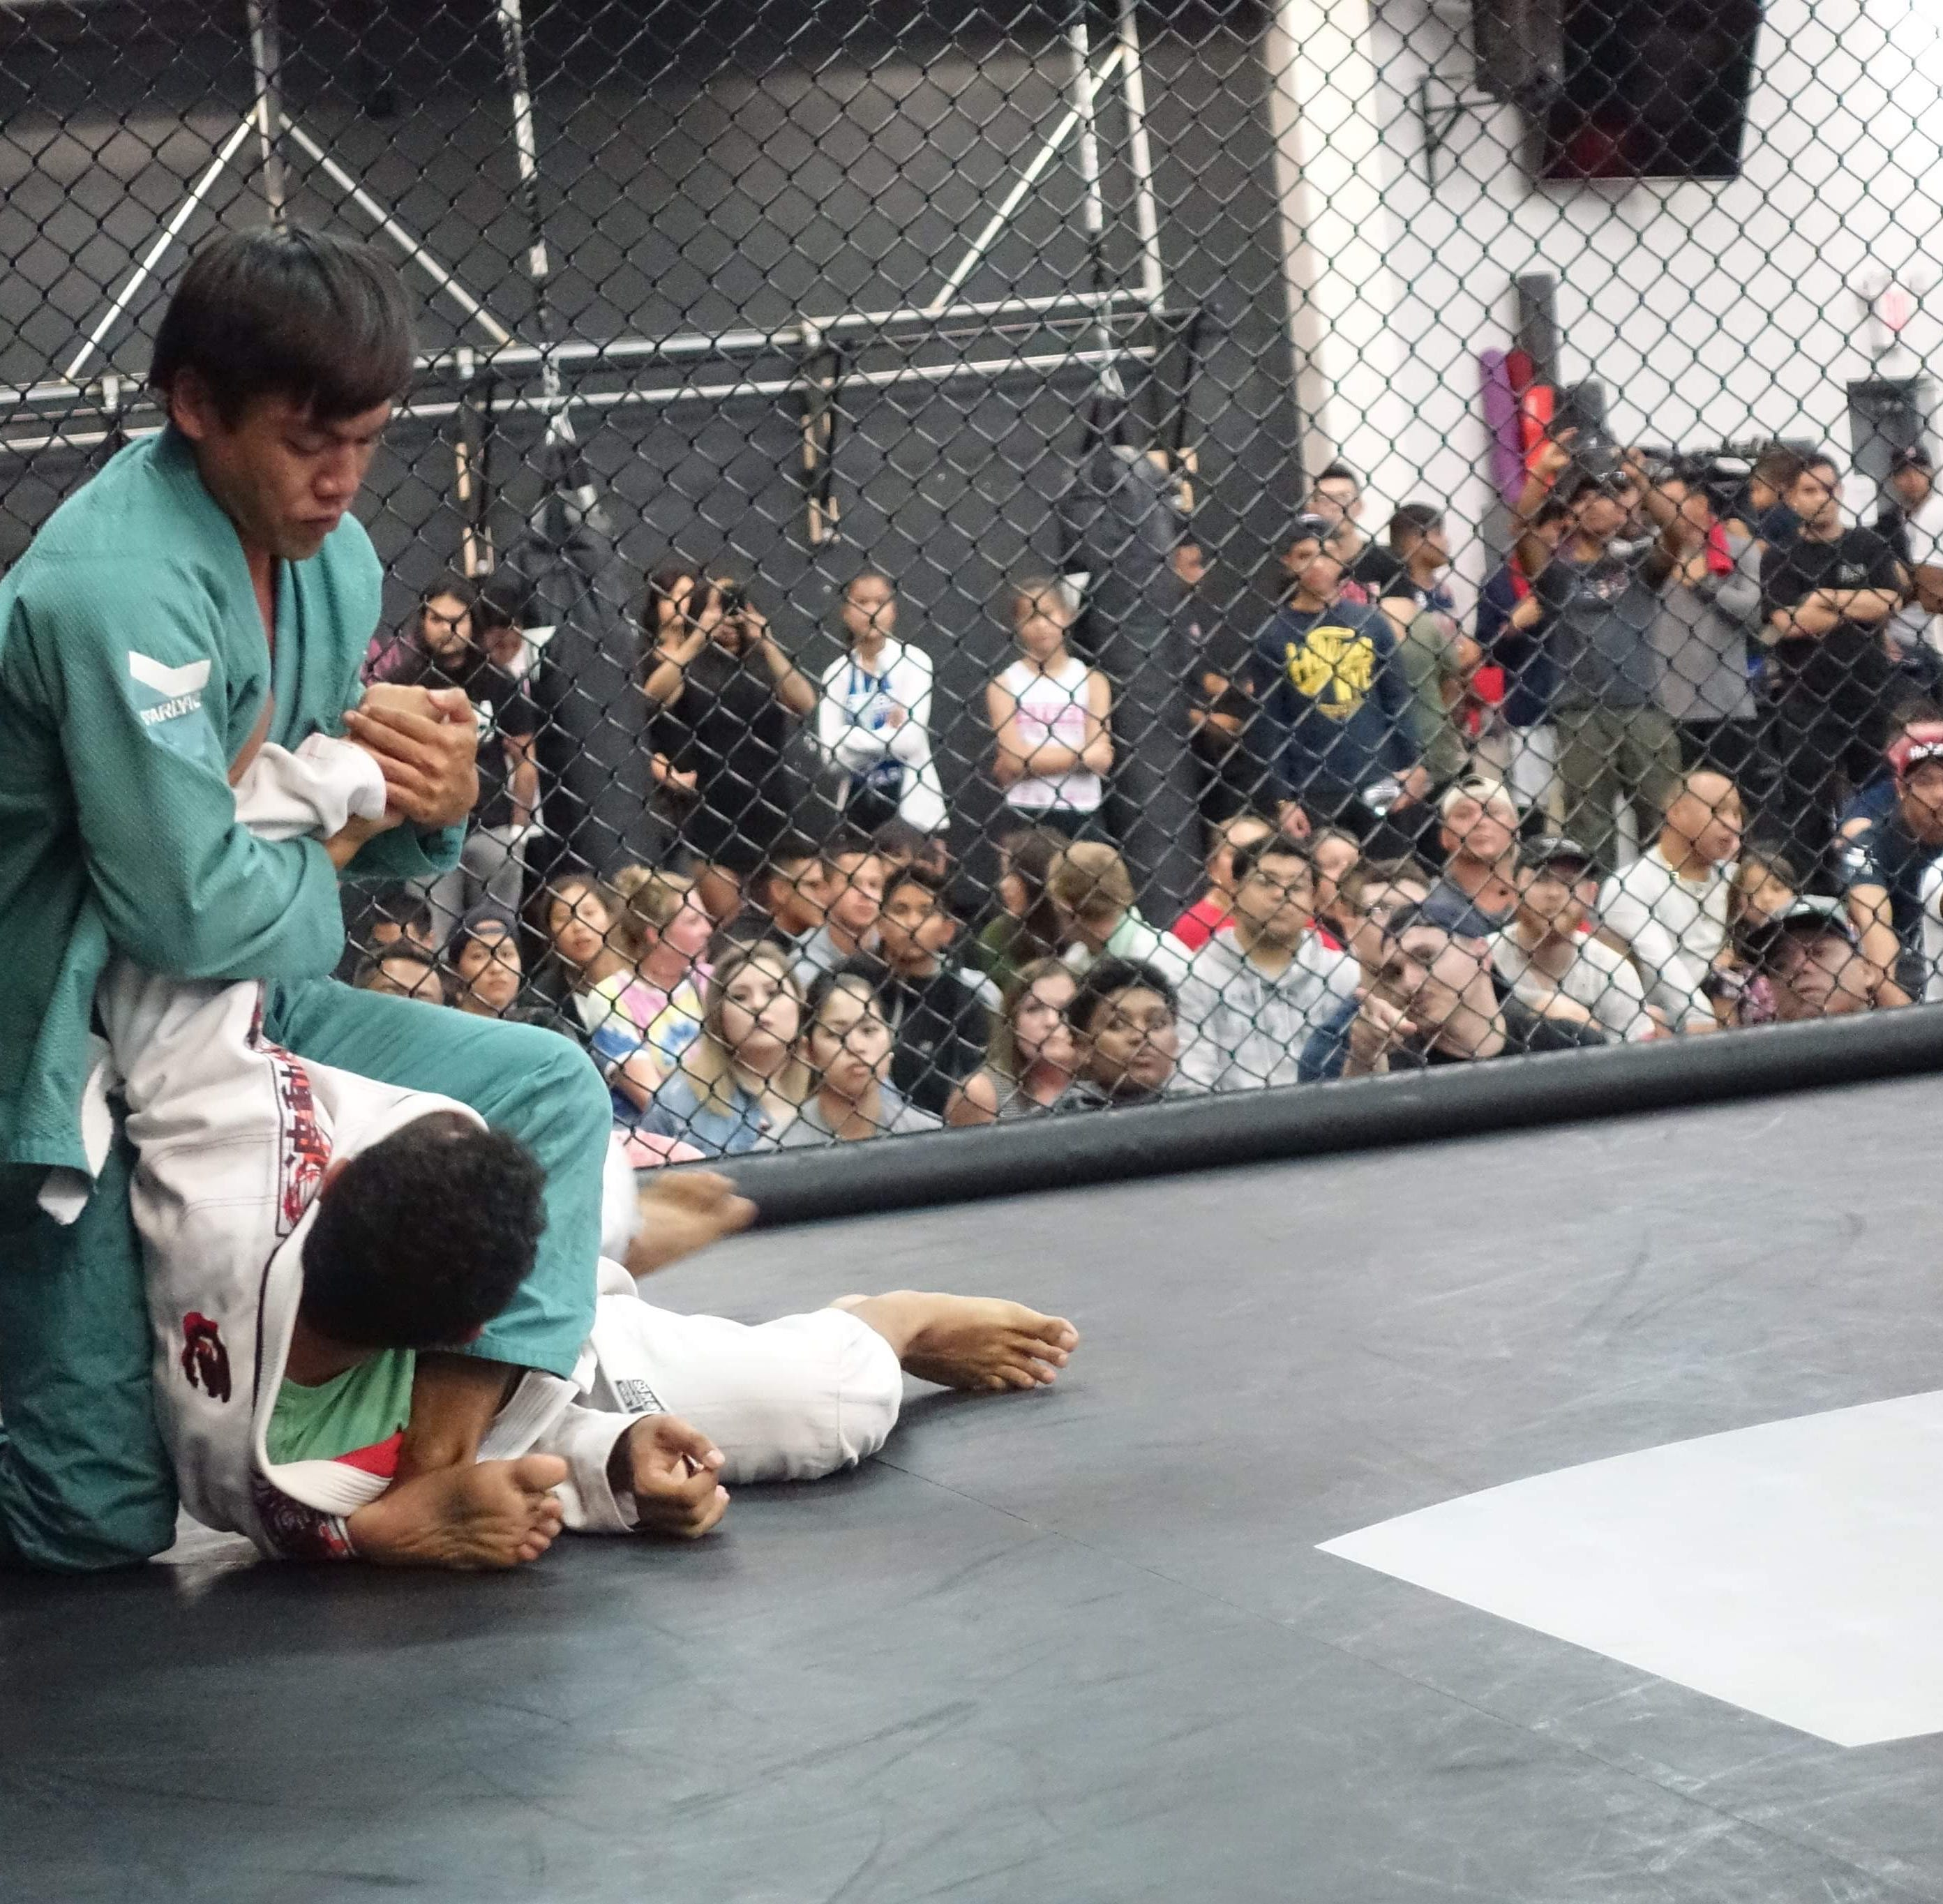 Steel Athletics Glorified Sparring event aimed at helping Guam skateboarders